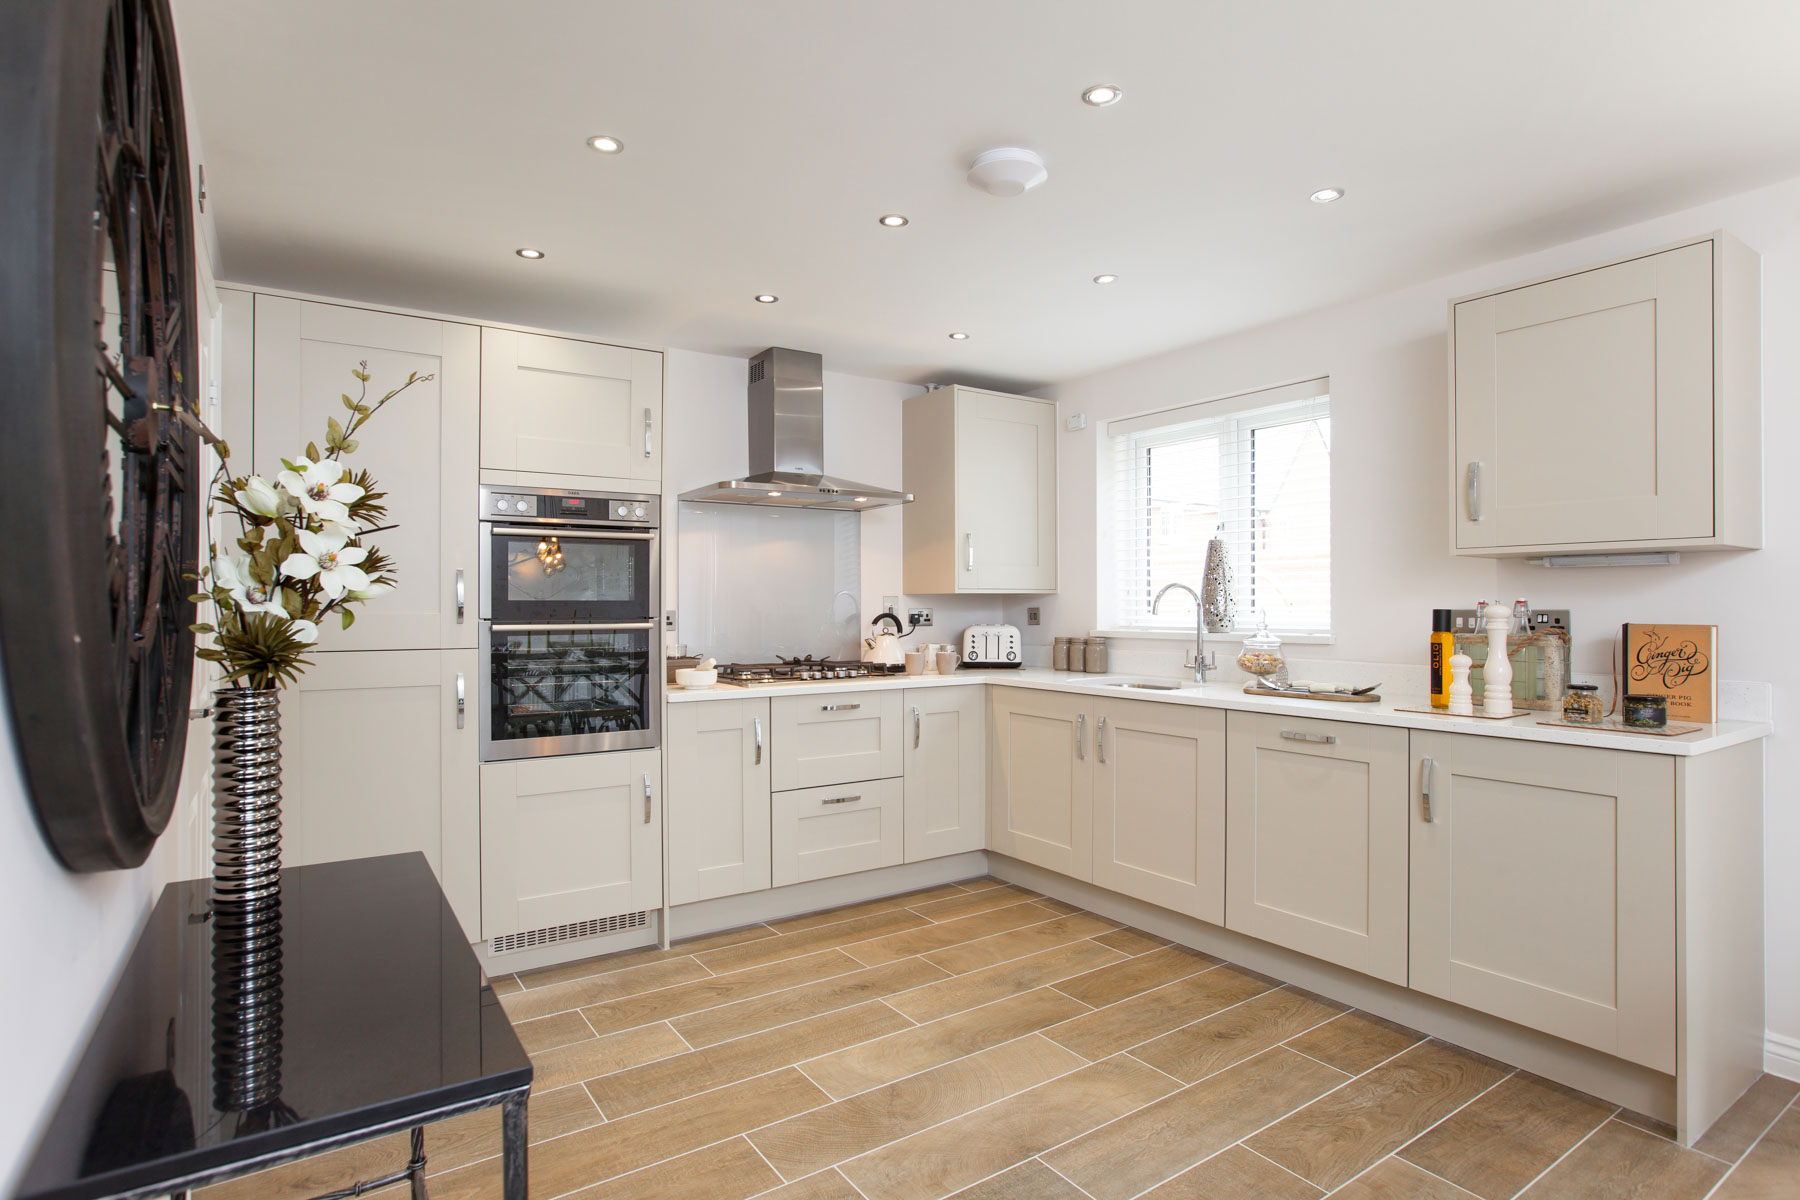 Taylor Wimpey Exeter - Sherford - Willow example kitchen 2